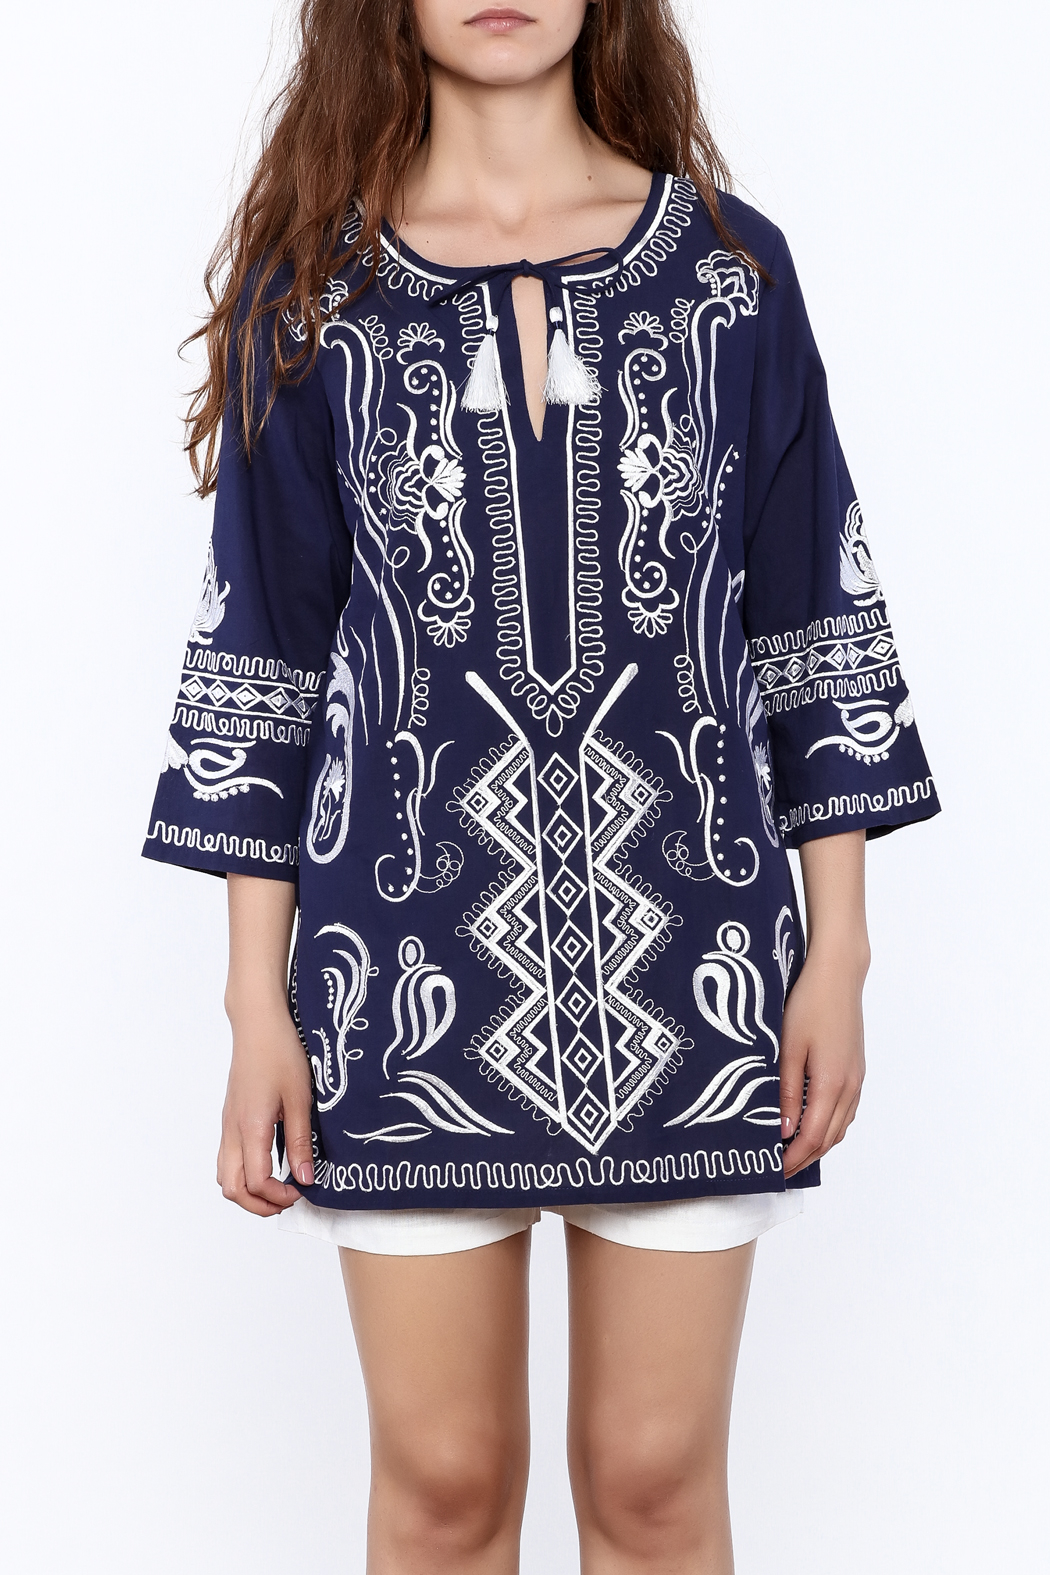 Gretchen Scott Navy Embroidered Tunic Top - Side Cropped Image